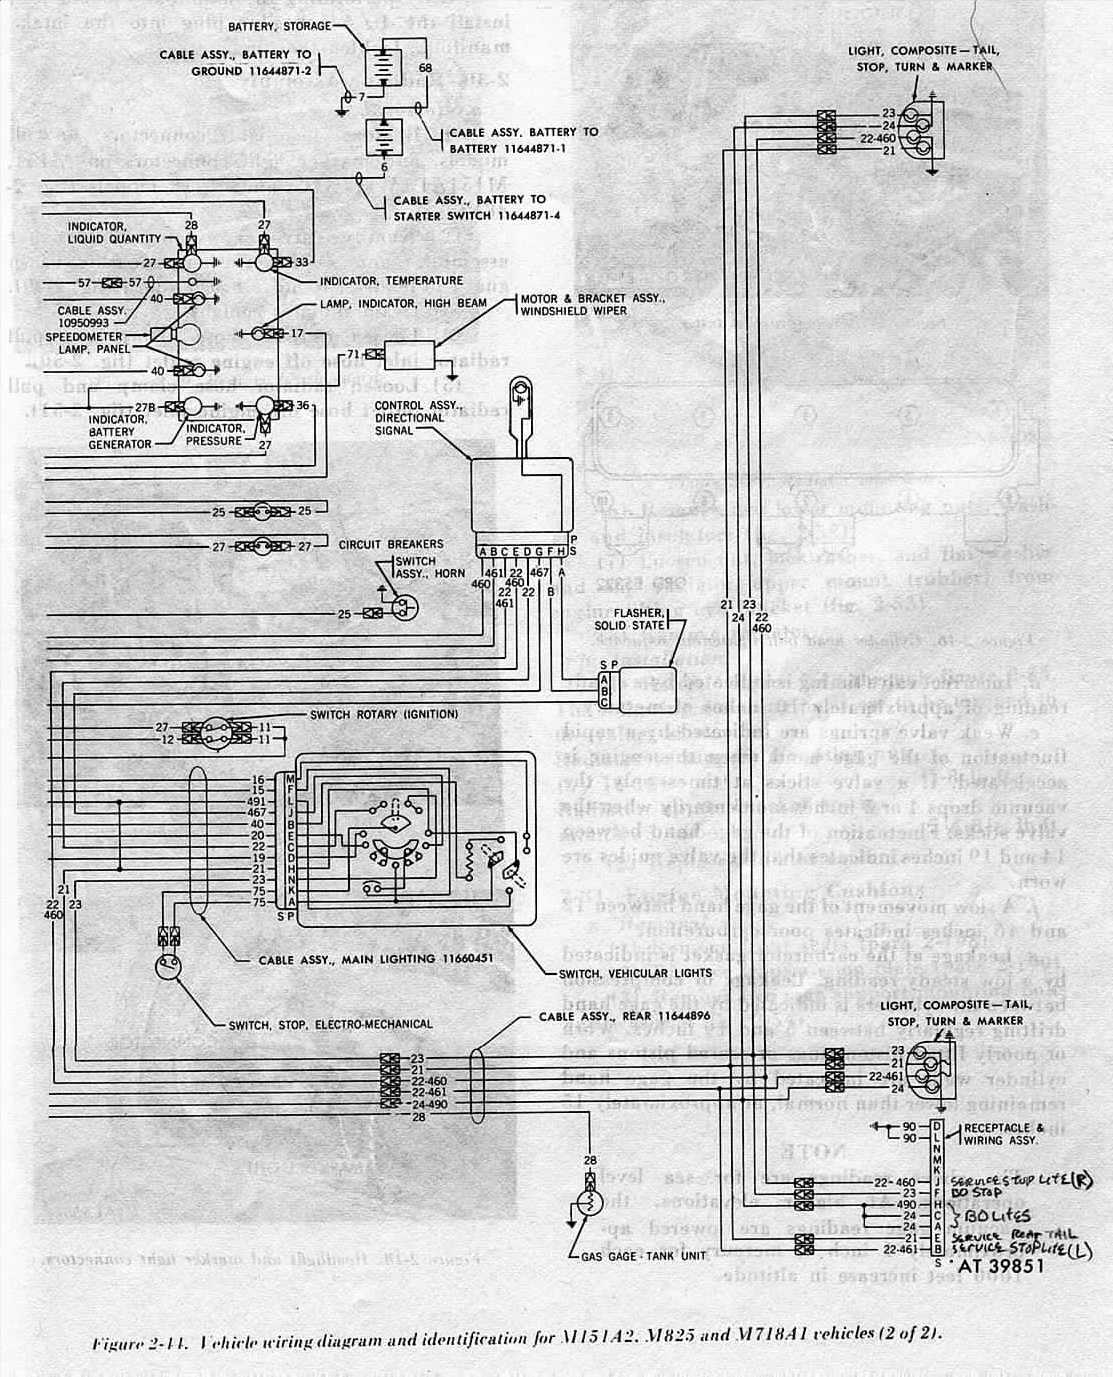 m151a2 wiring diagram